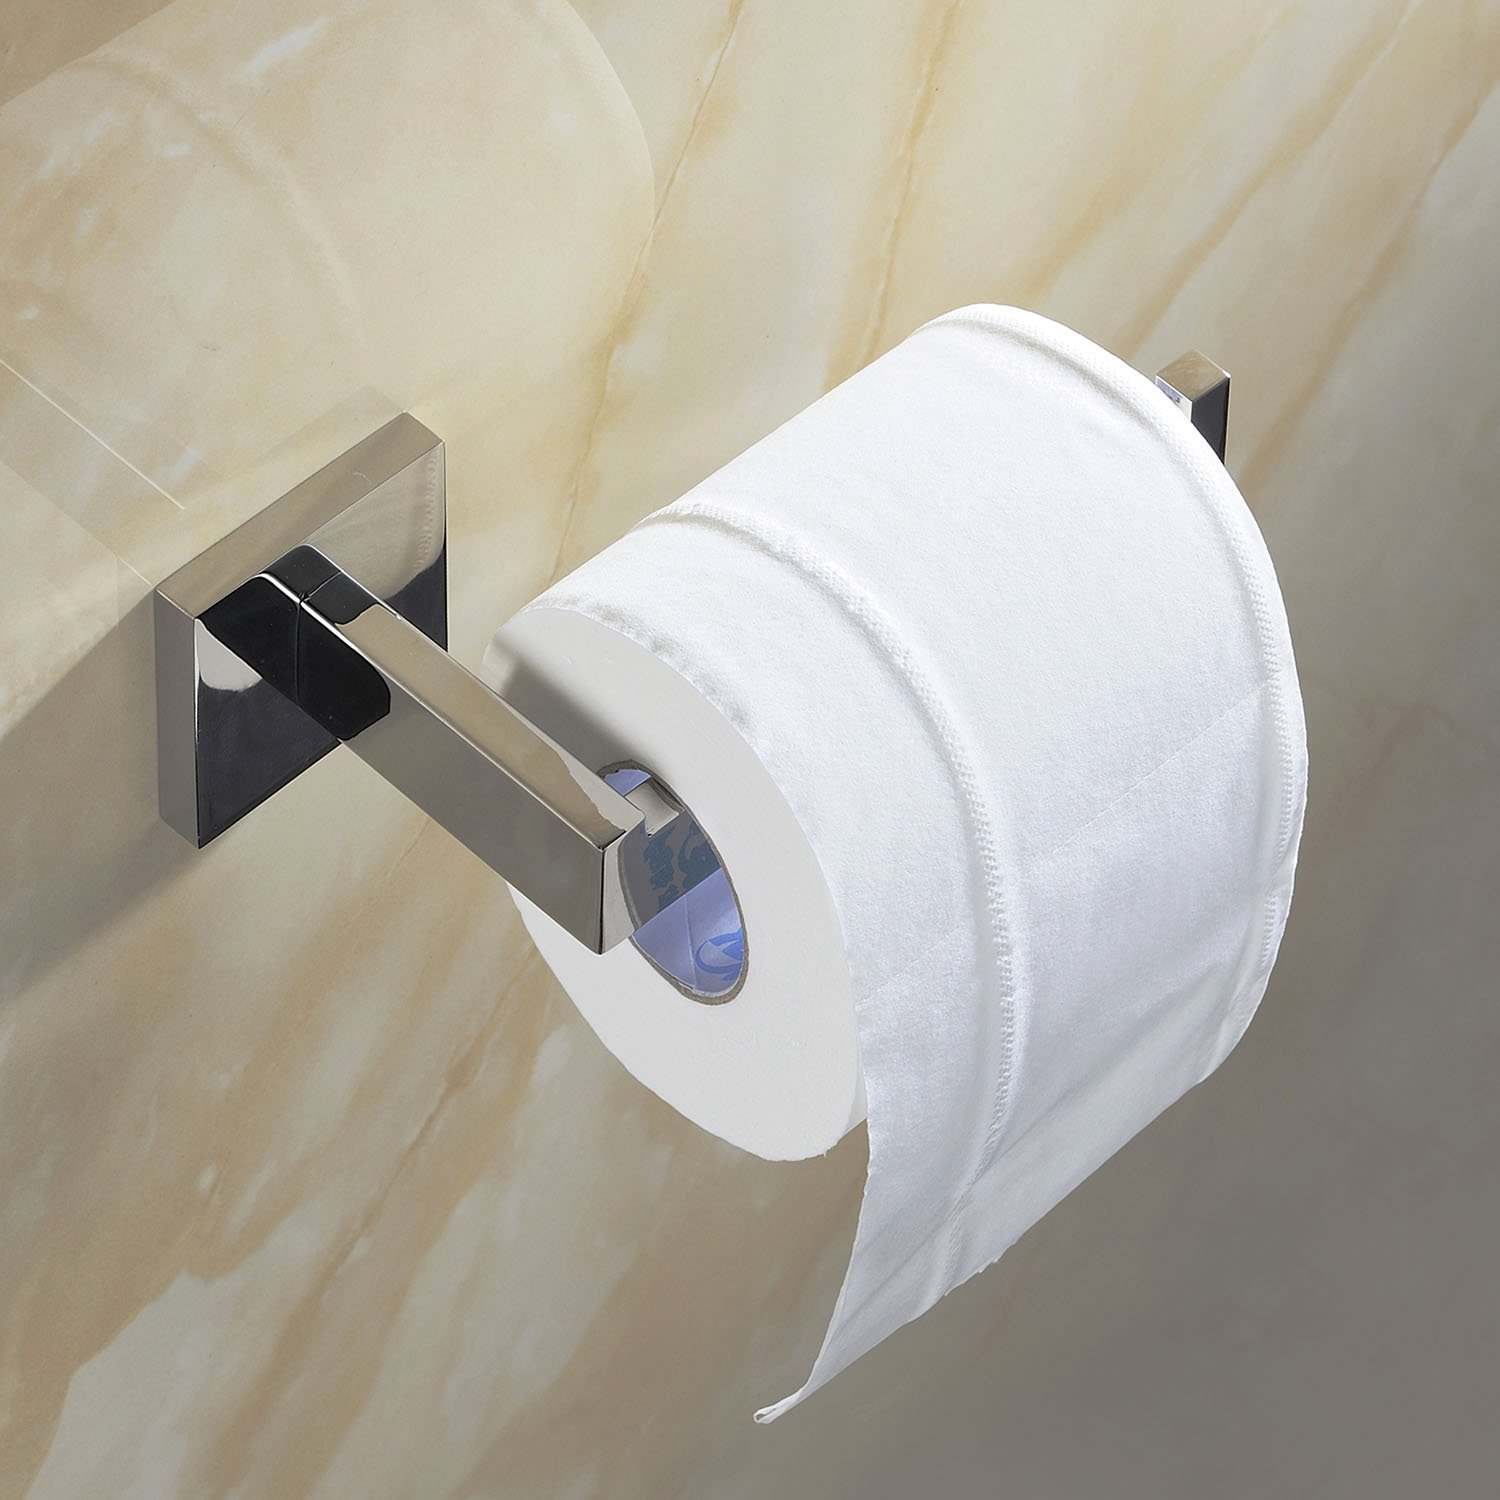 Amazon.com: Luxury 304 Stainless Steel Chrome Finished Toilet Paper ...